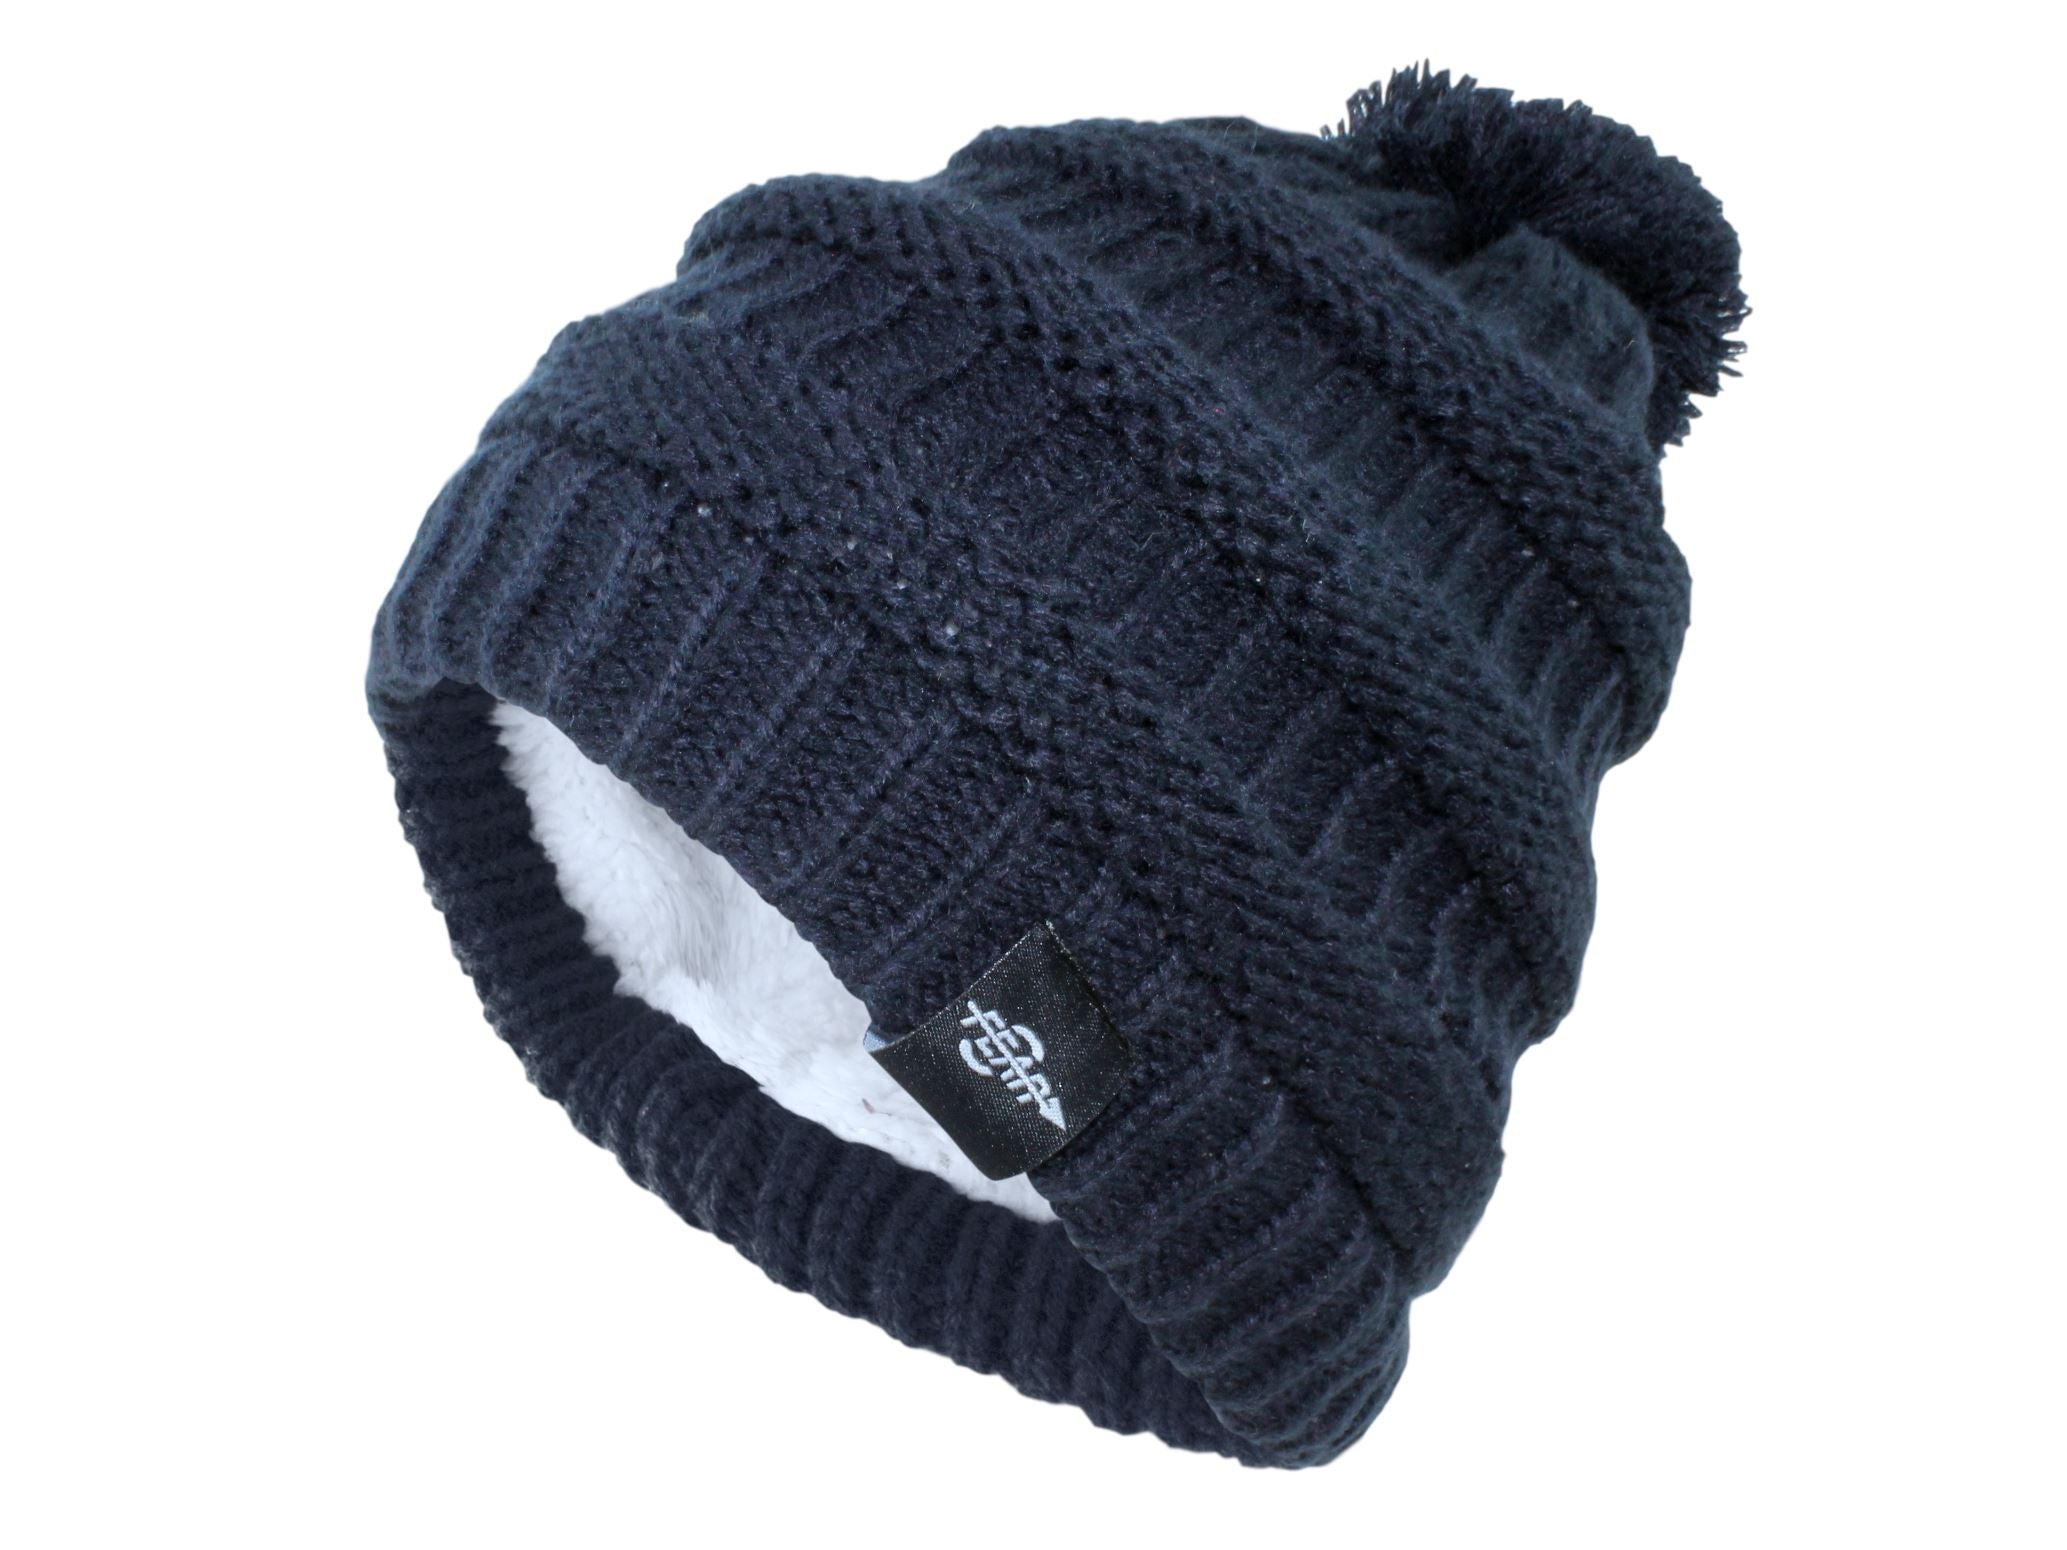 Fear0 NJ Women Plush Insulated EKnit Pom Pom Beanie Hat Women's Fashion - Women's Accessories - Women's Hats Fear0 Footwear/Apparel Dark Blue